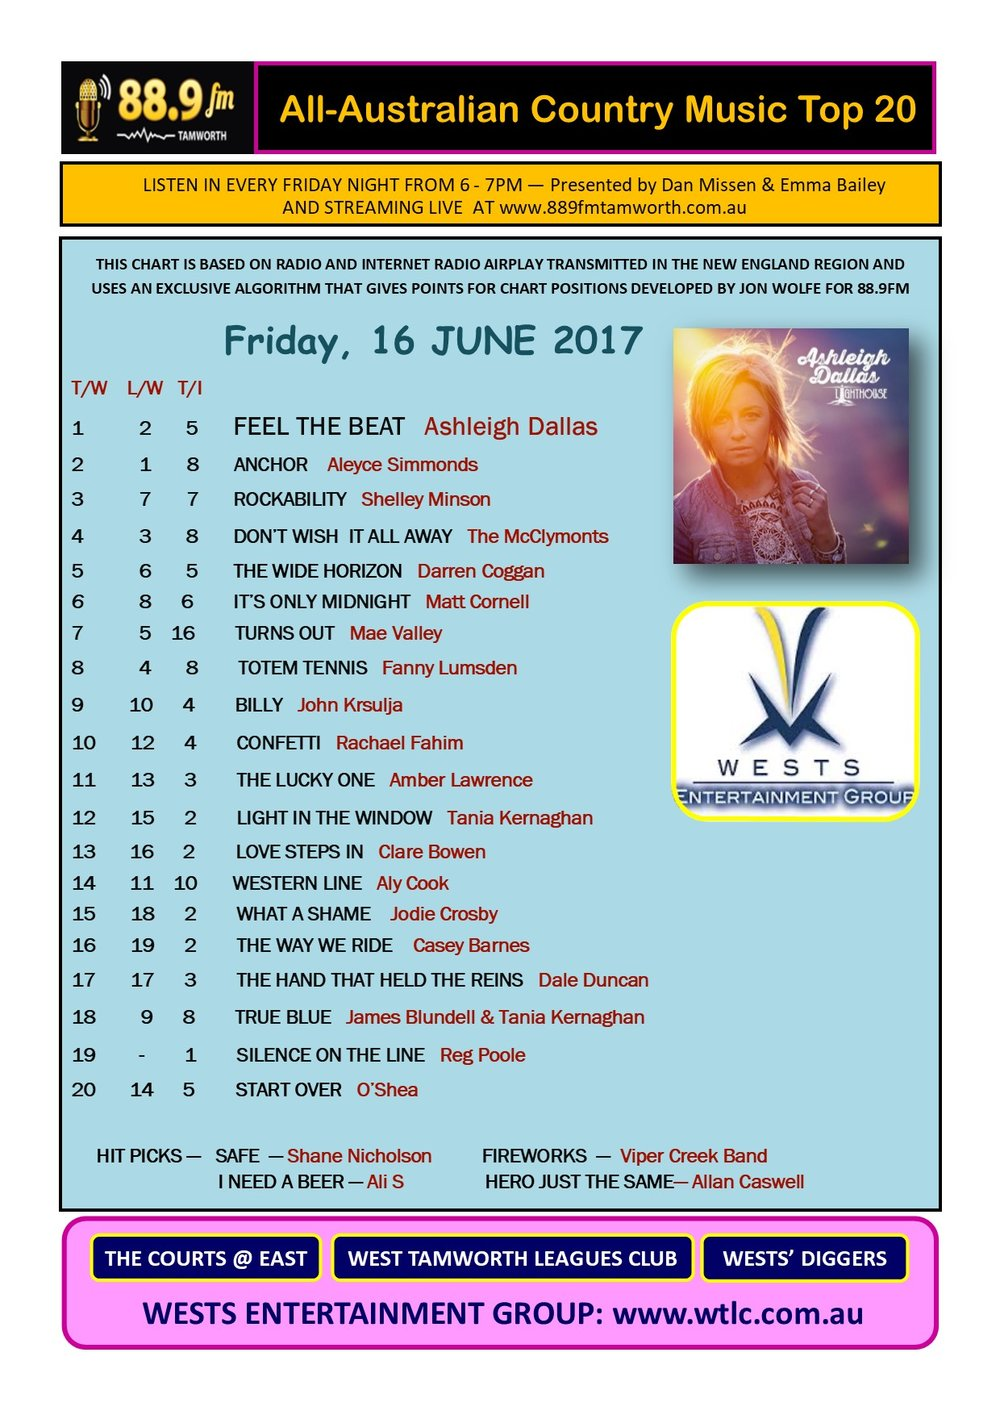 Country Music Top 20 June 16